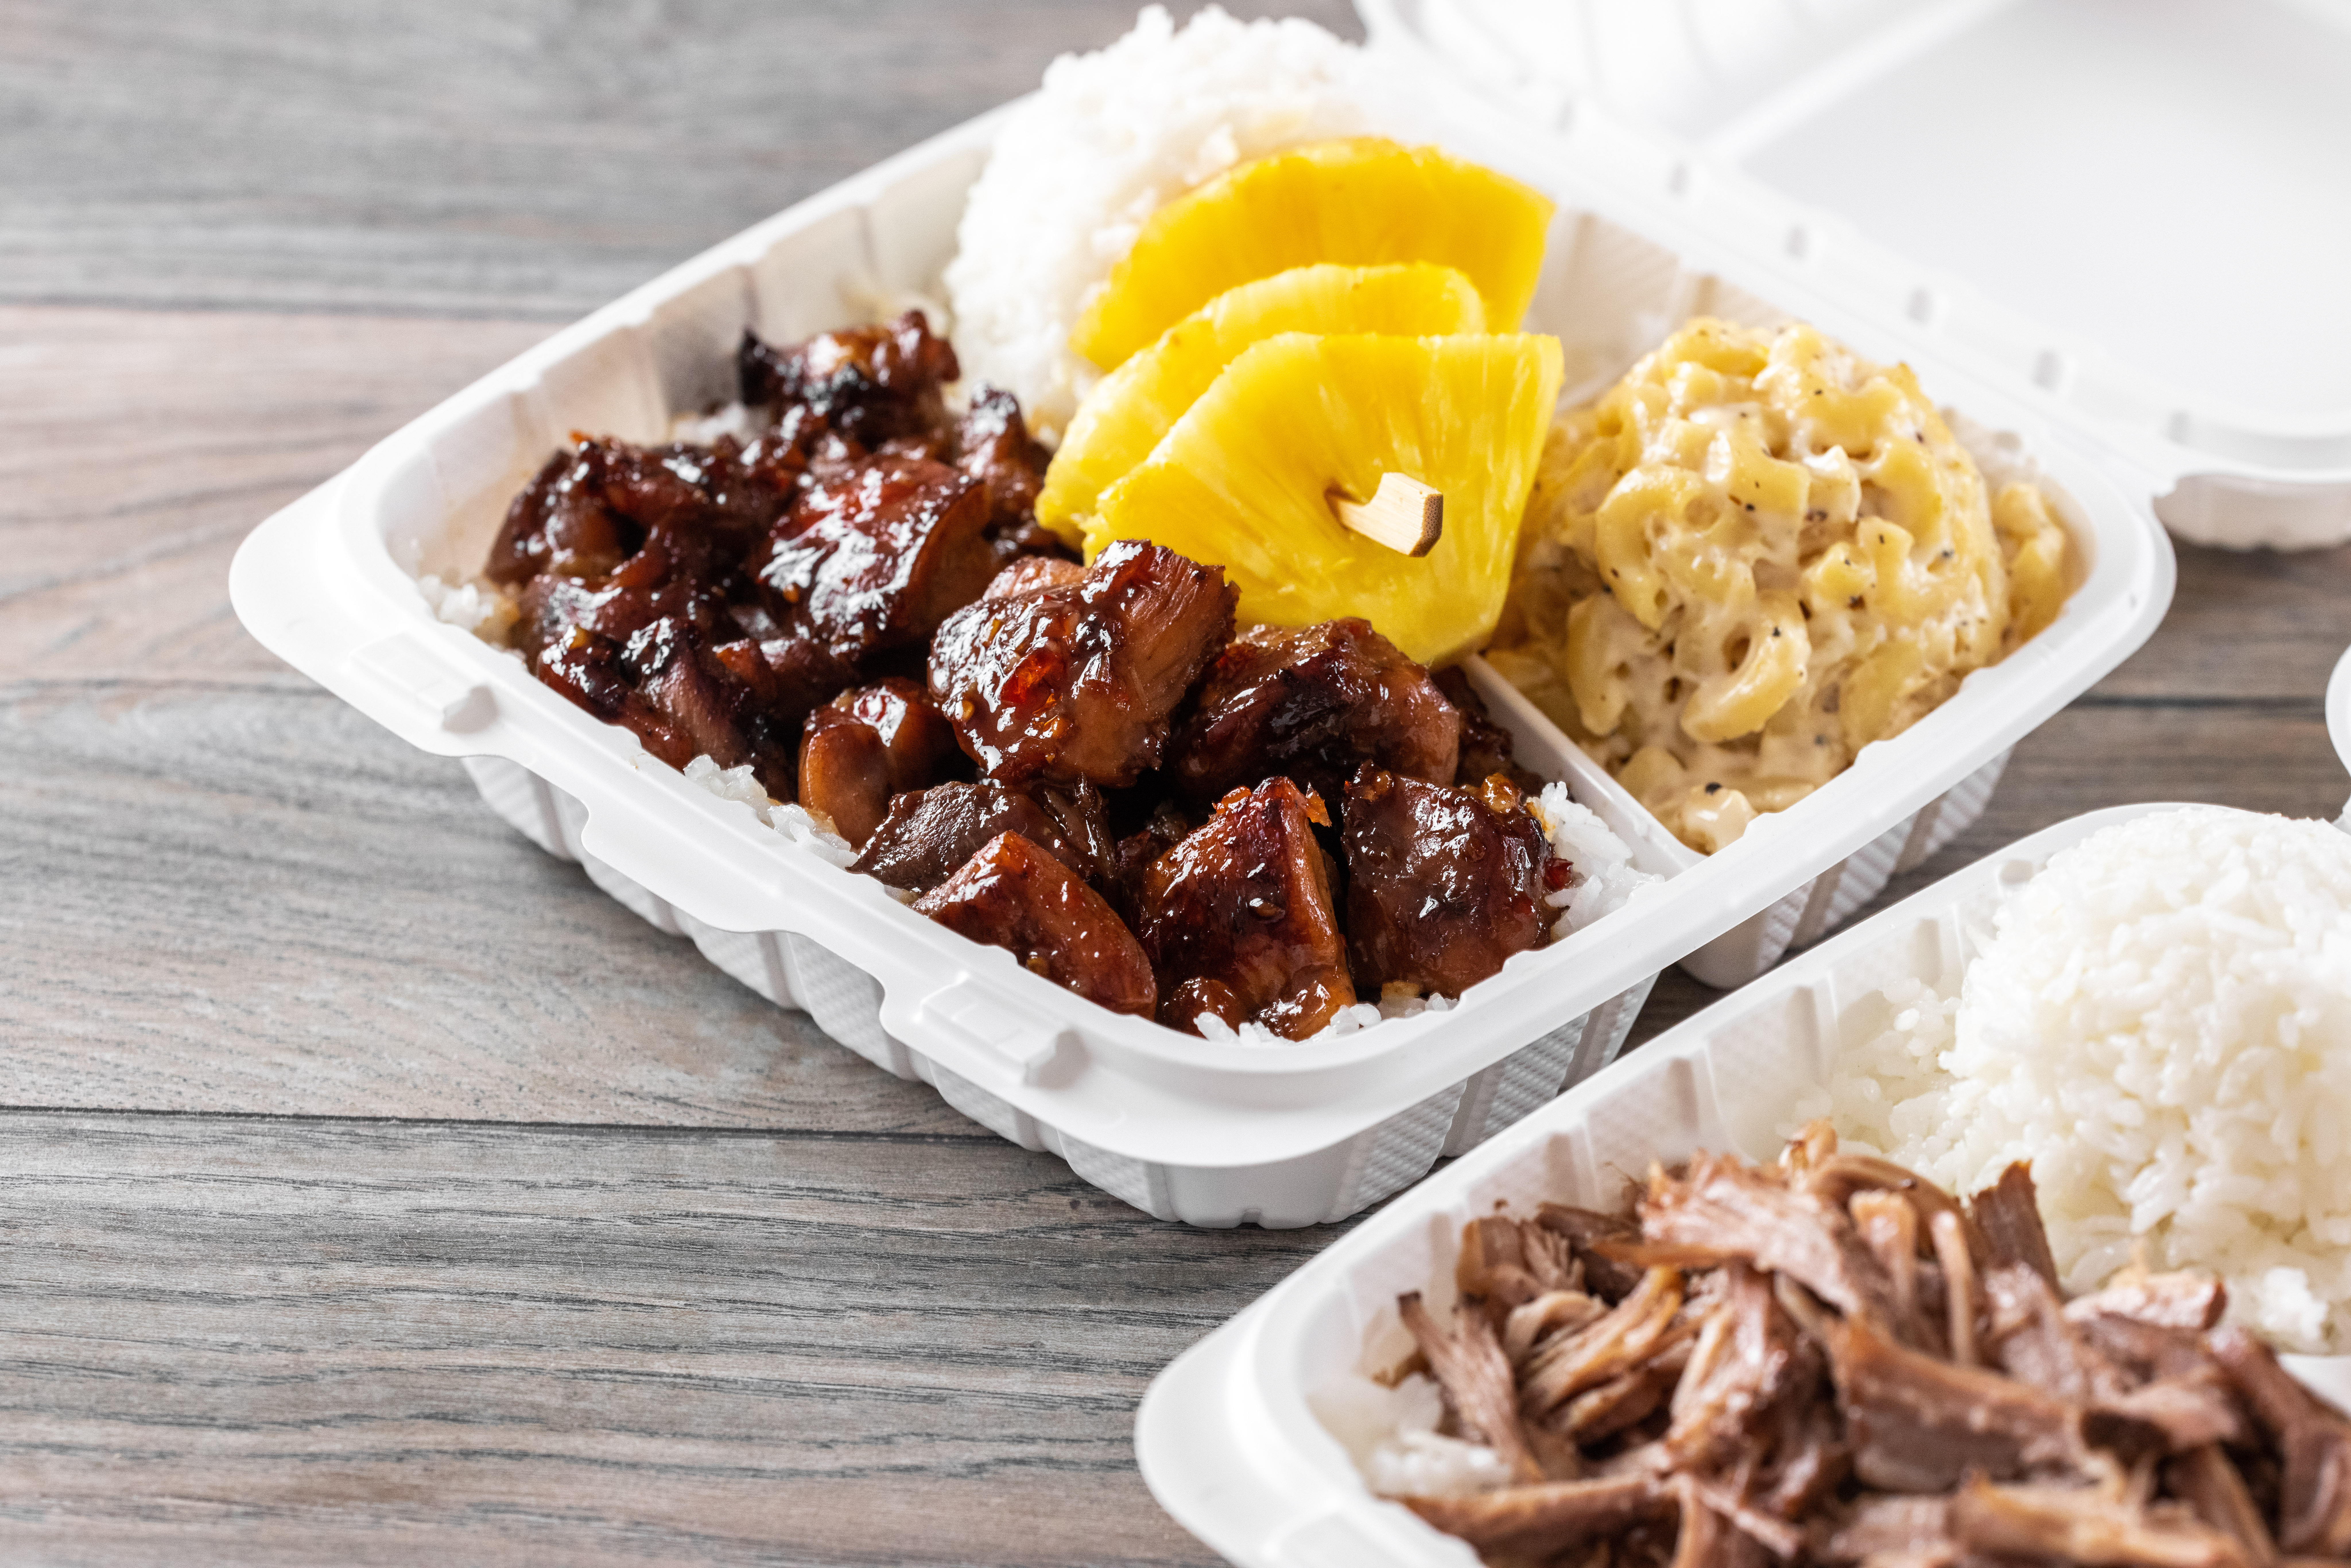 Meat, rice, macaroni salad, and pineapple in a white paper takeout container.